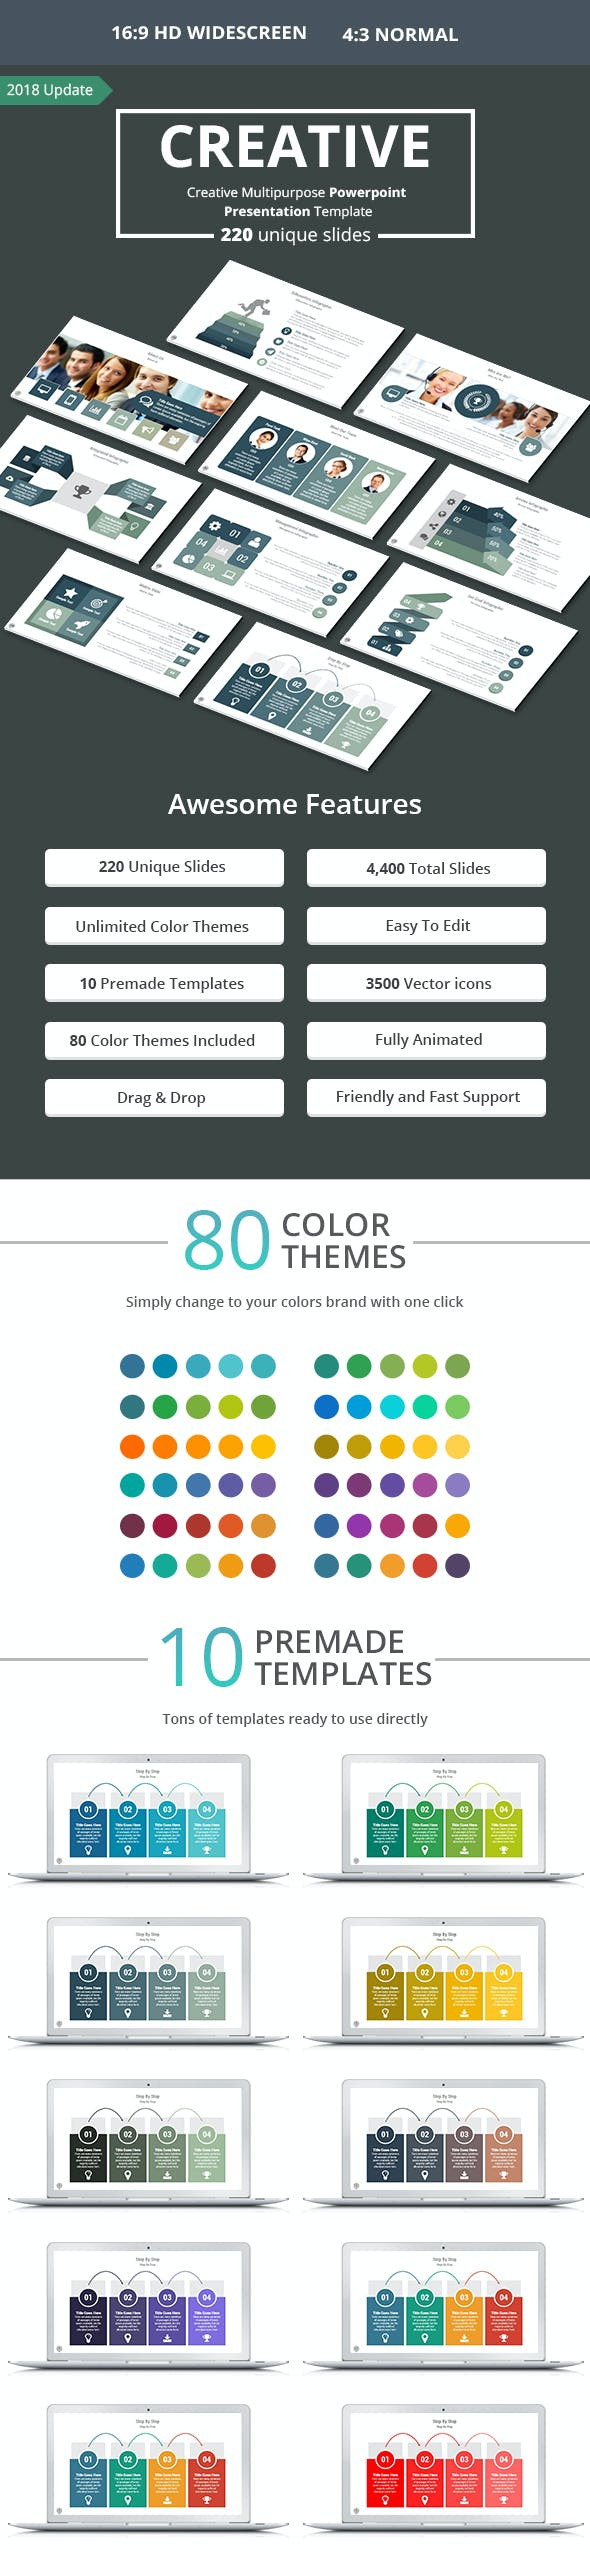 creative powerpoint presentation template by as 4it graphicriver